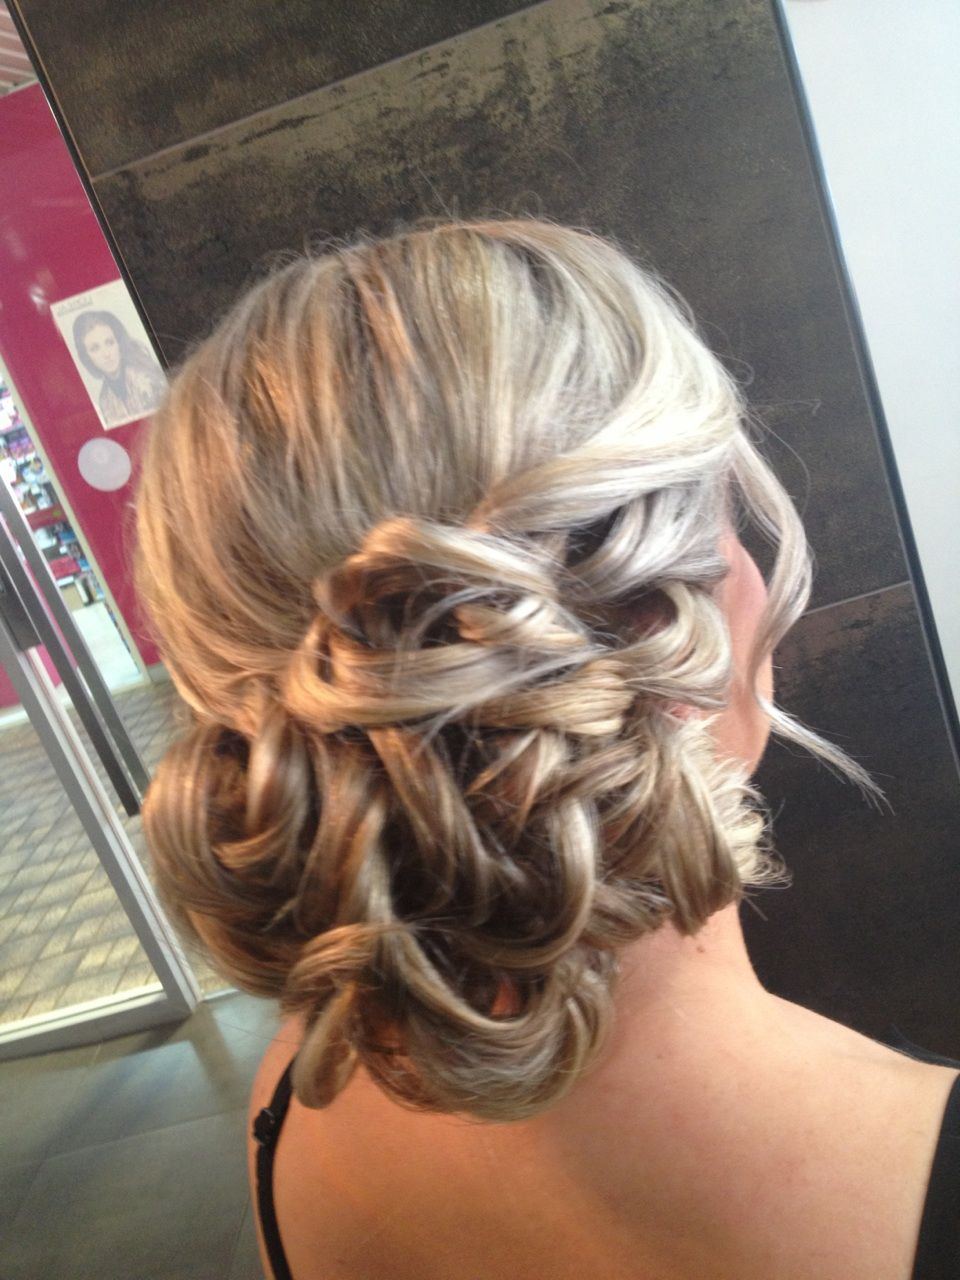 Formal hair upstyle by the esteem team penrith hair ups